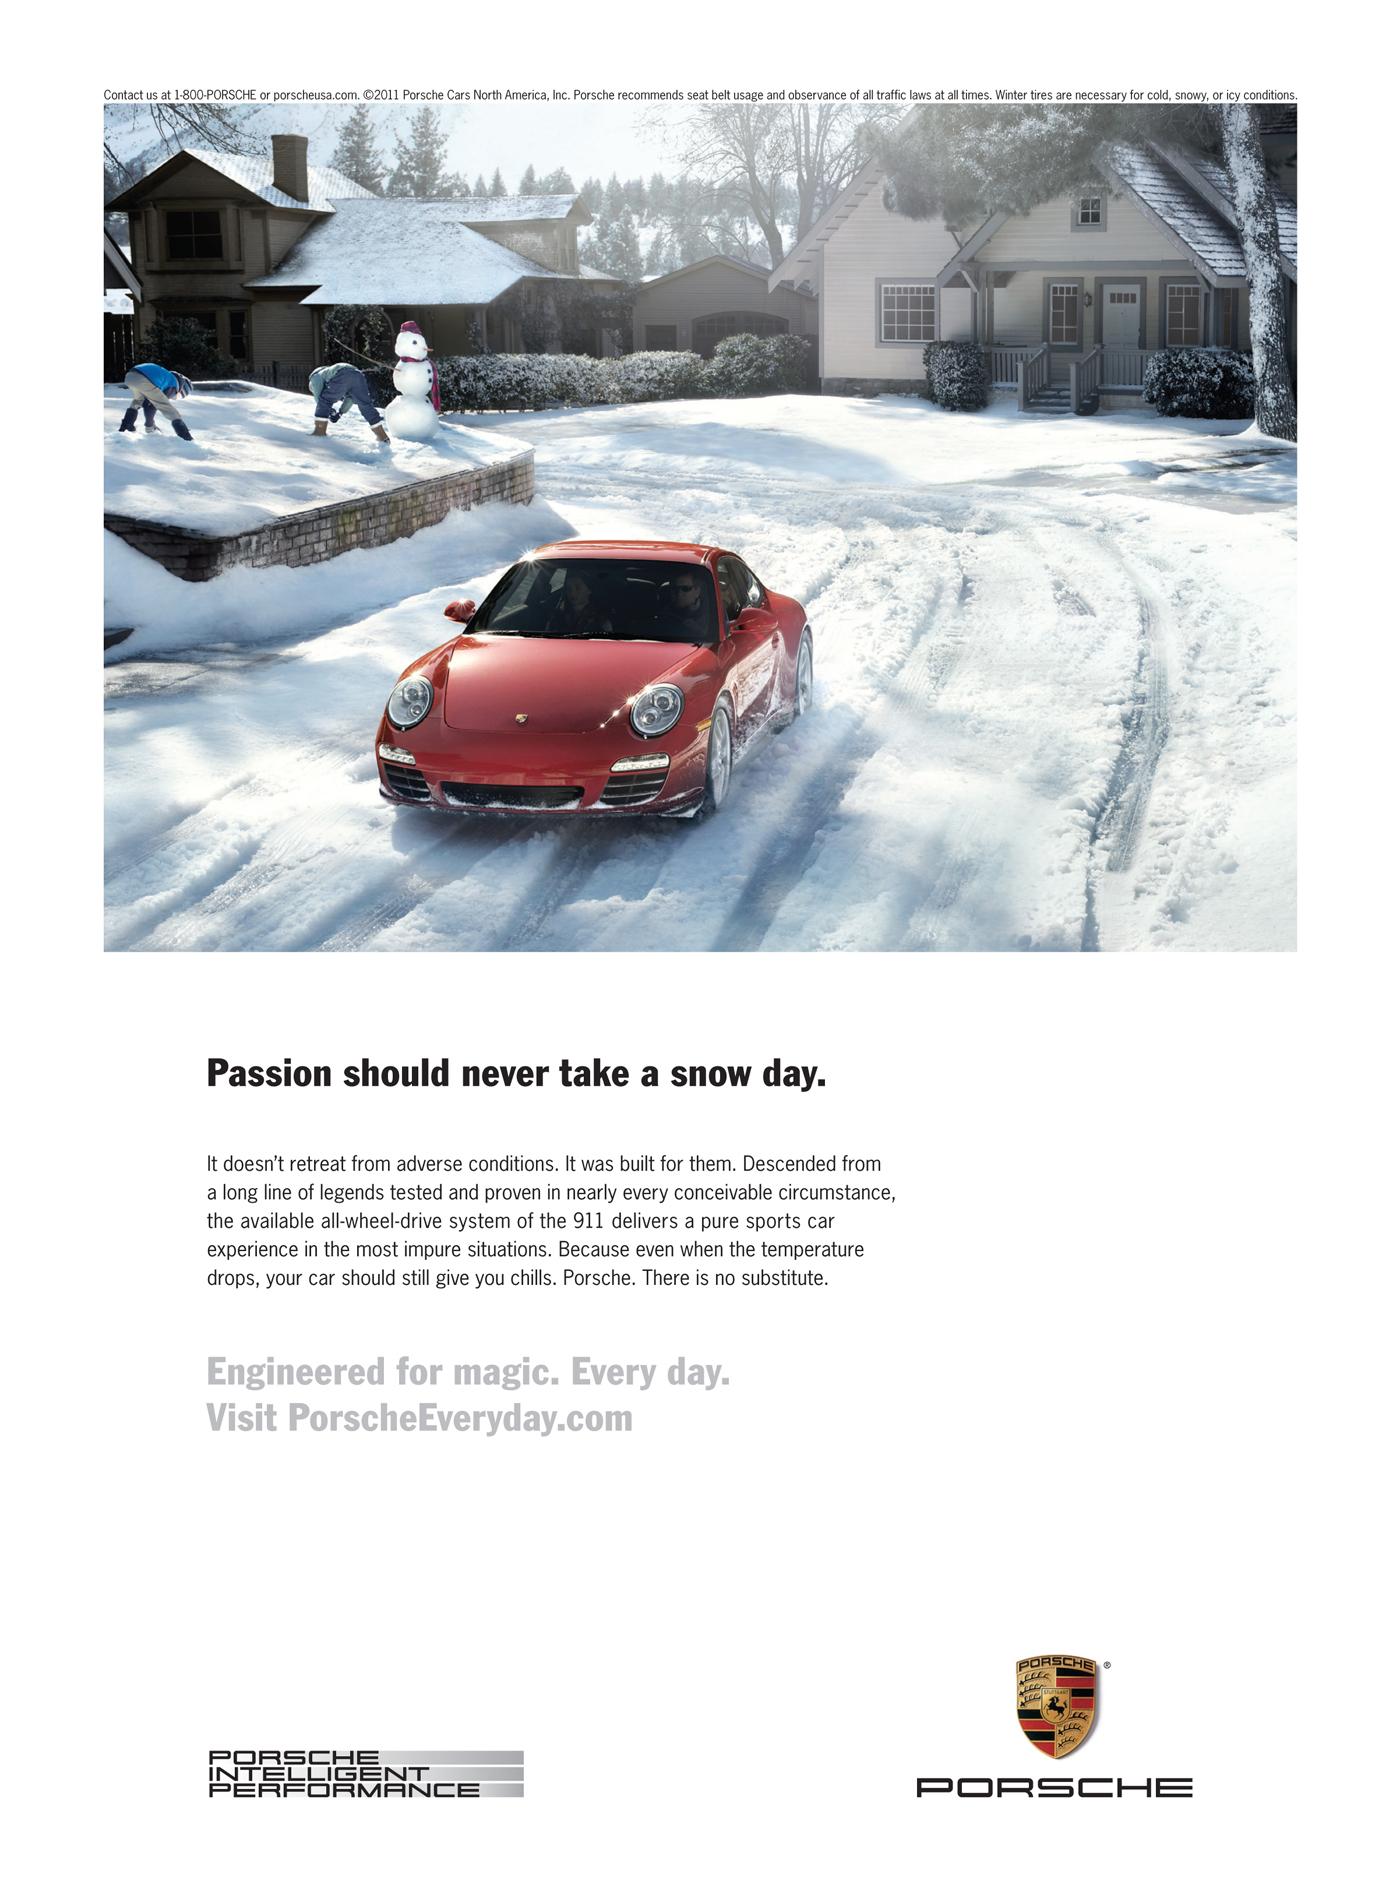 Best Colleges For Marketing And Advertising Of Cars